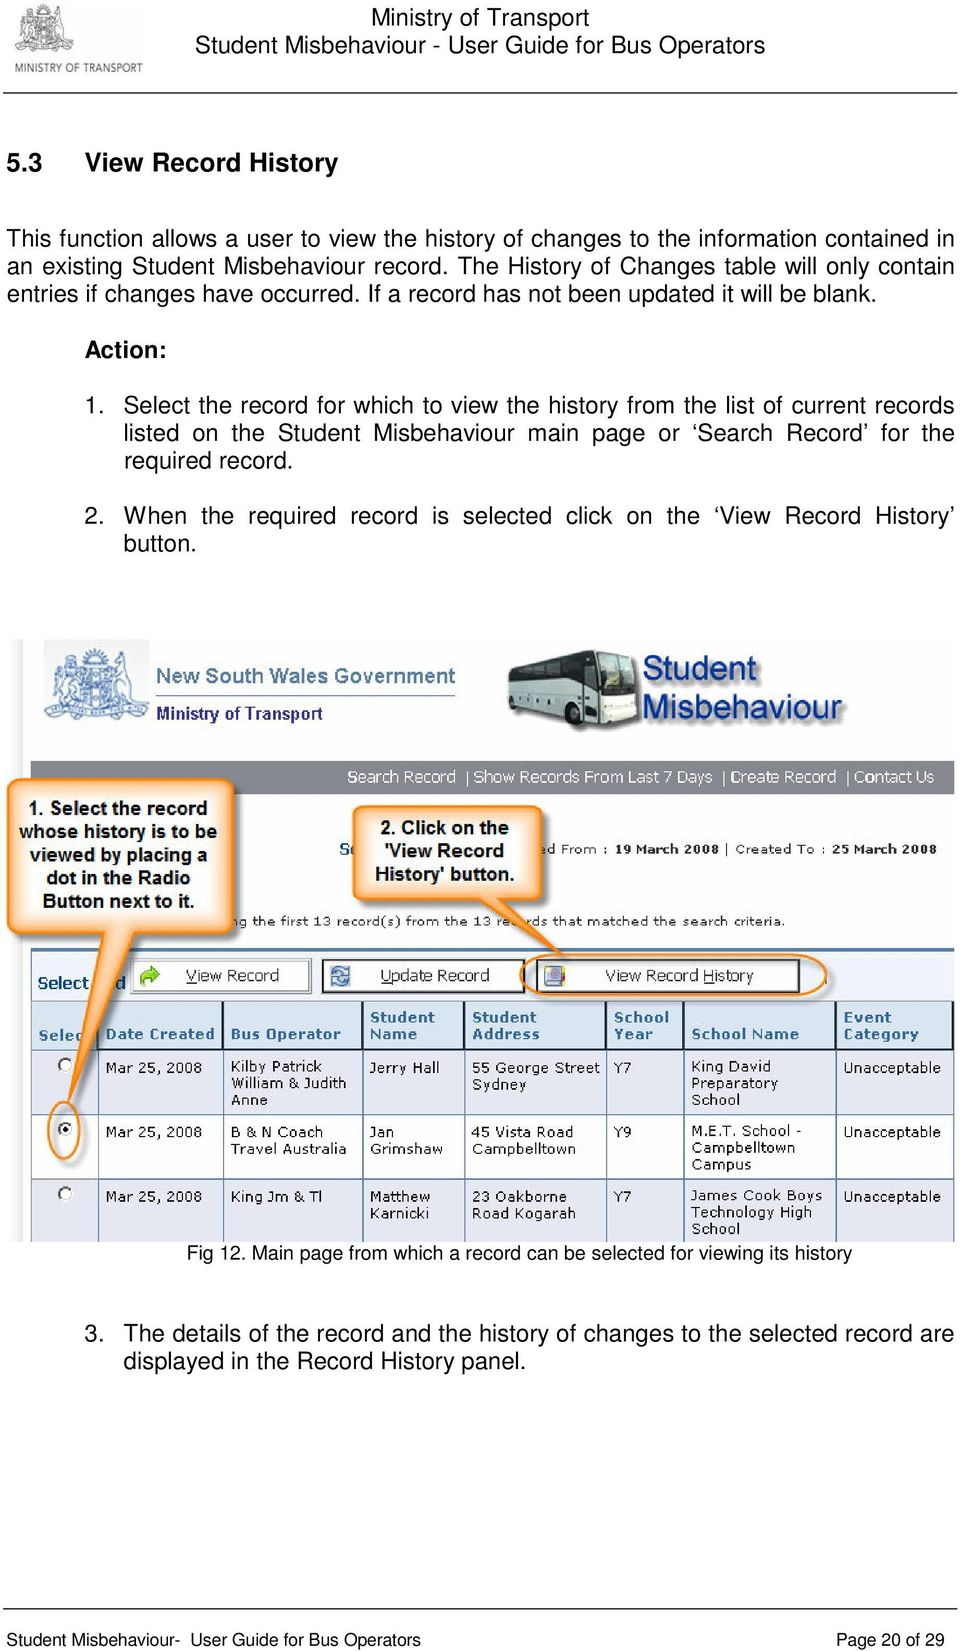 Select the recrd fr which t view the histry frm the list f current recrds listed n the Student Misbehaviur main page r Search Recrd fr the required recrd. 2.